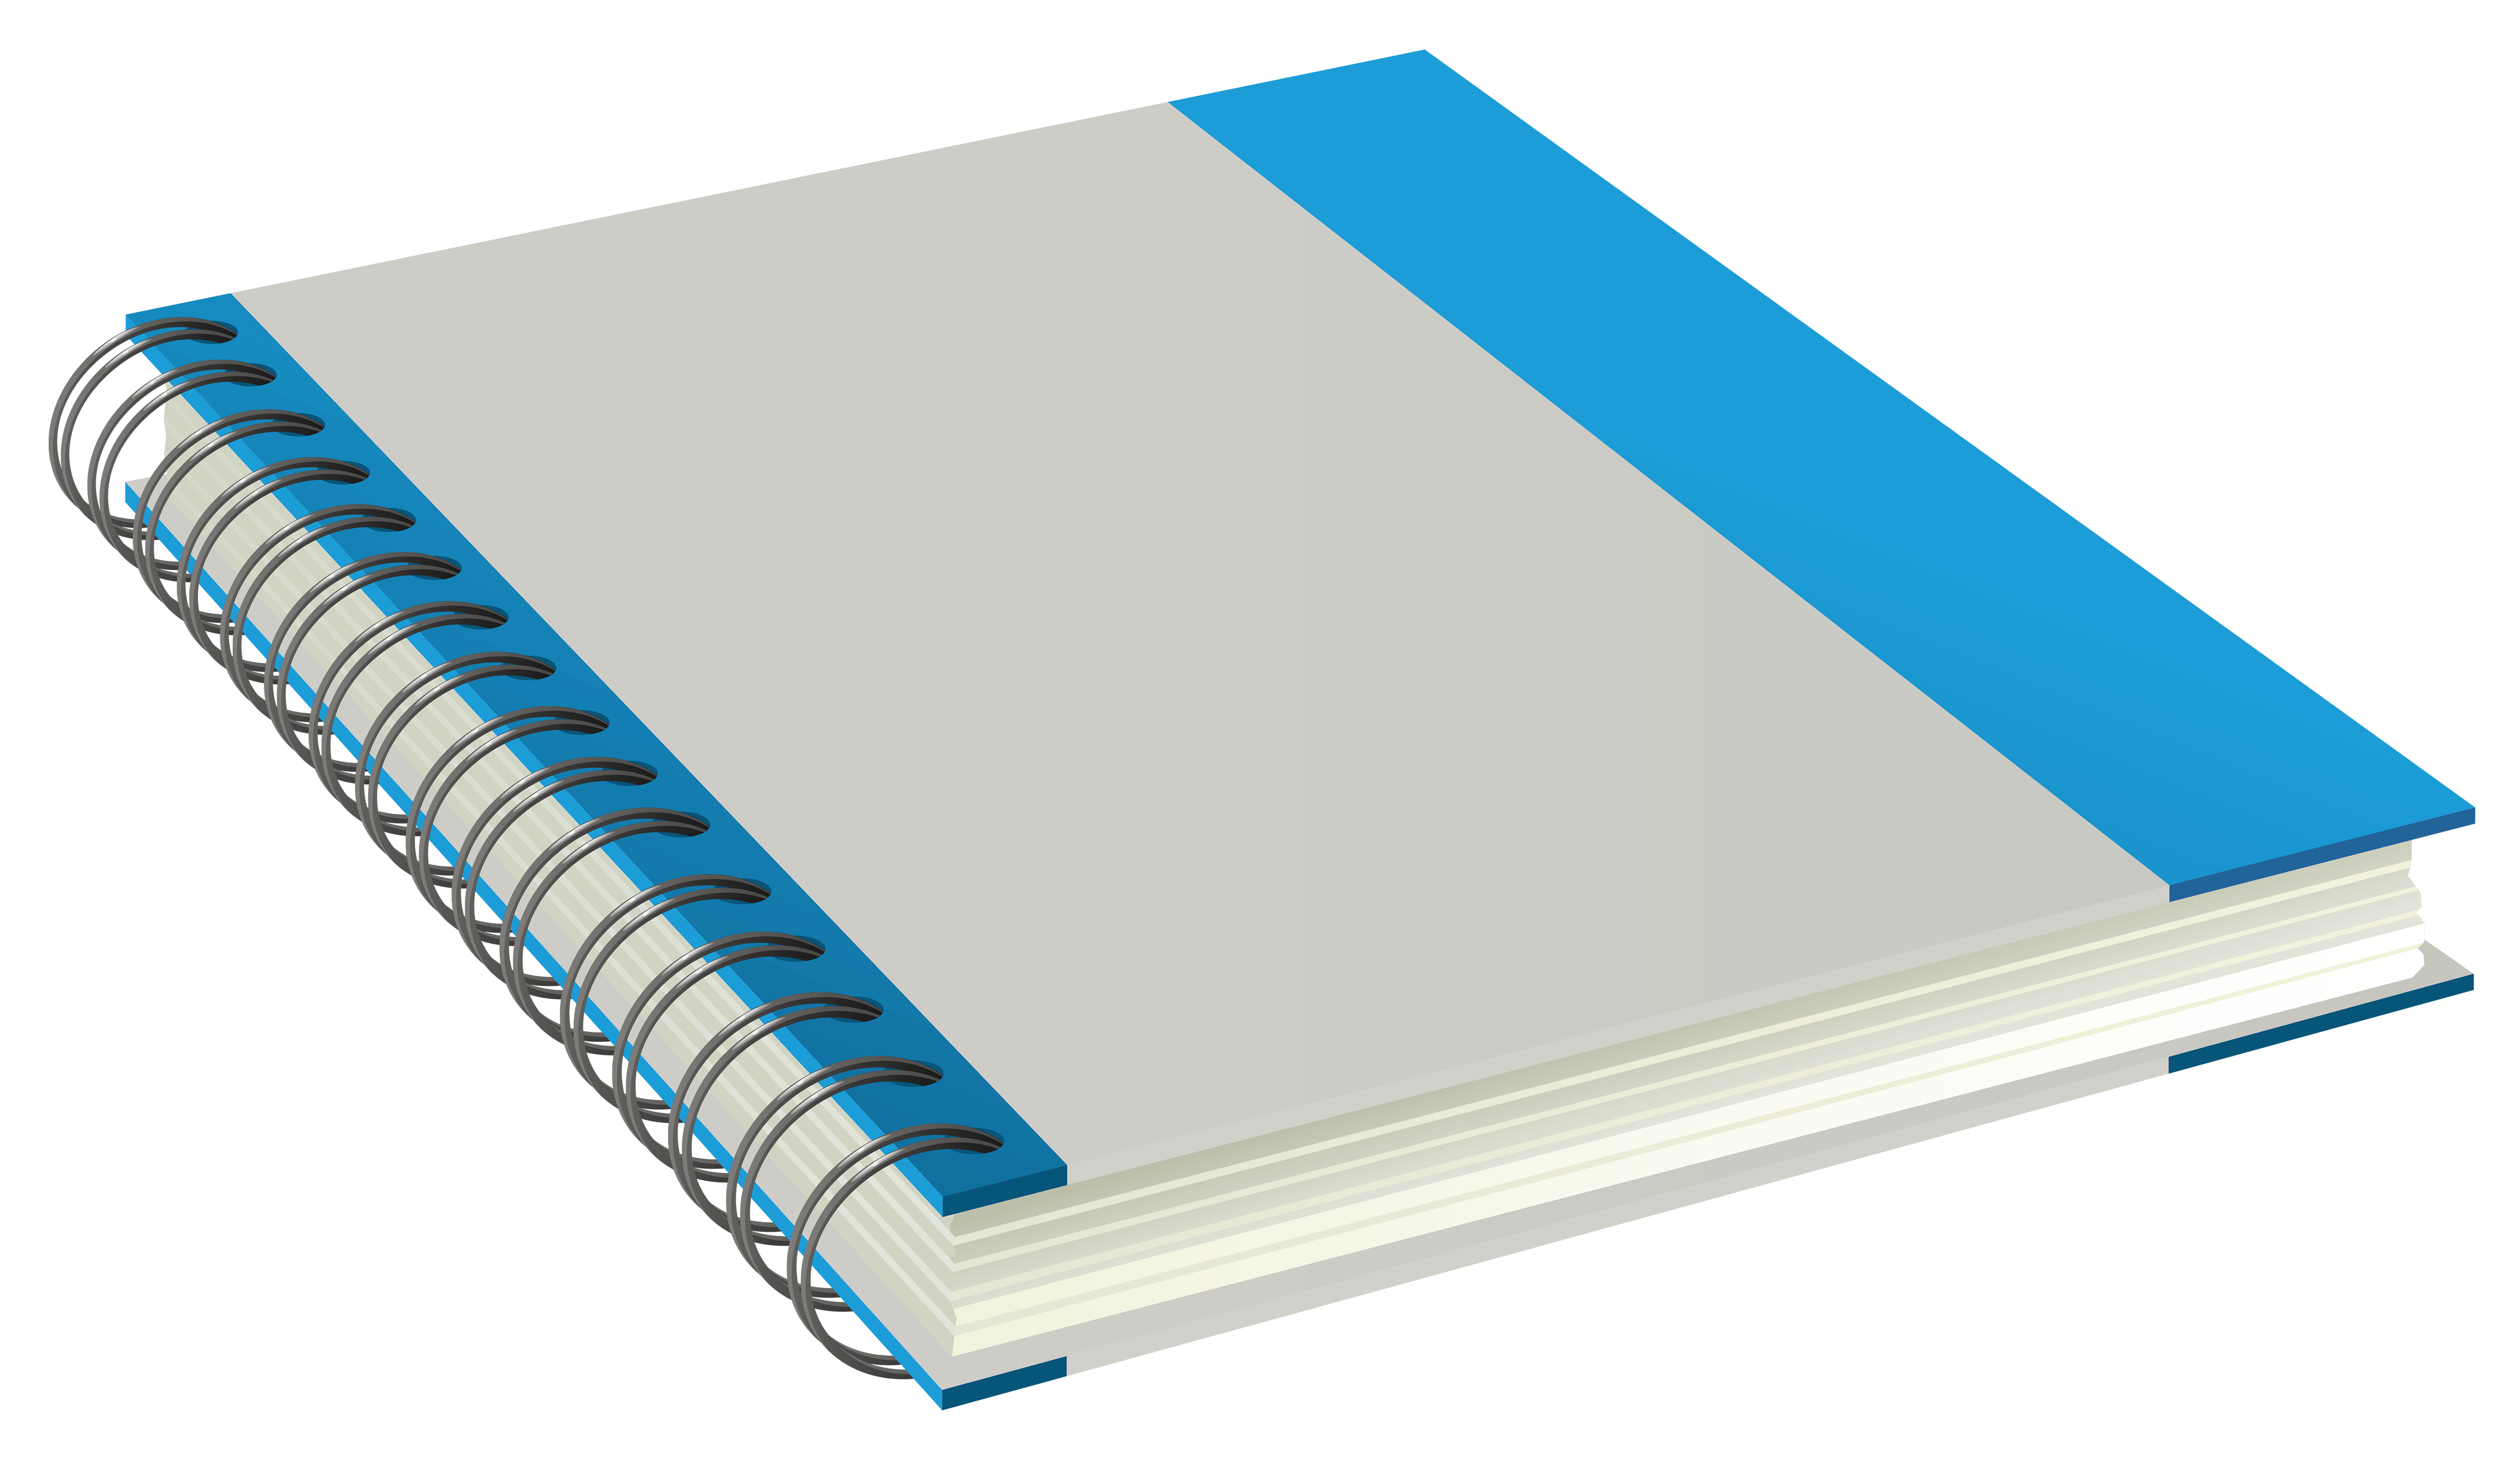 Notebook .png. Png images free download